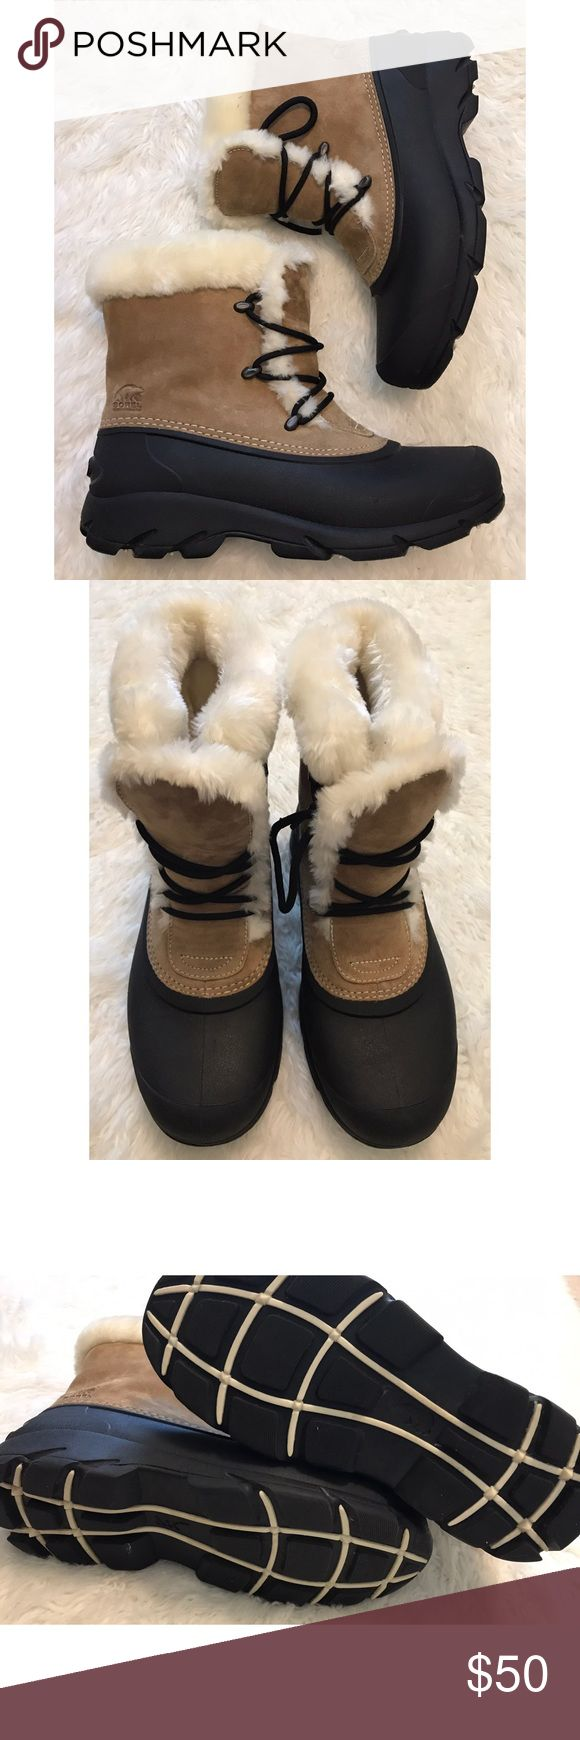 ❤️SALE❤️Sorel Snow Angel Lace-Up Insualted Boots -Bundle & save!!  -Check out my other listings for more great deals!  -NO TRADES OR HOLDS -I try my best to do next day shipping  ❌❌❌PLEASE DO NOT BUNDLE ANY OF THE LOTS TOGETHER, the shipping weight will be over the limit and I will cancel your order. If you have any questions  - please ask!  ❌❌❌ Sorel Shoes Winter & Rain Boots